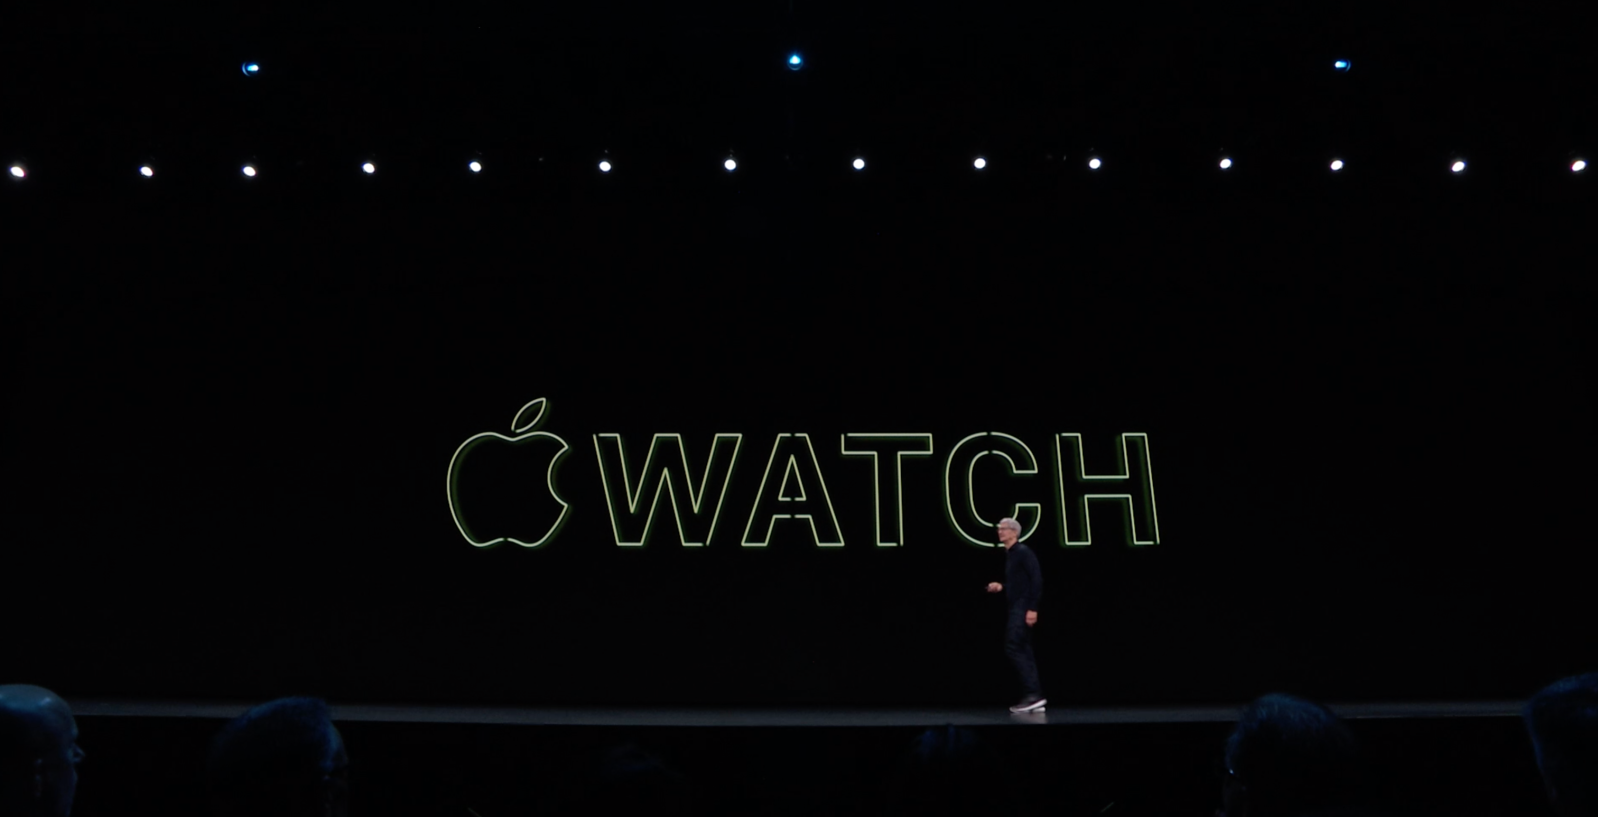 watchOS 6 includes a sleek new charging animation [Video]